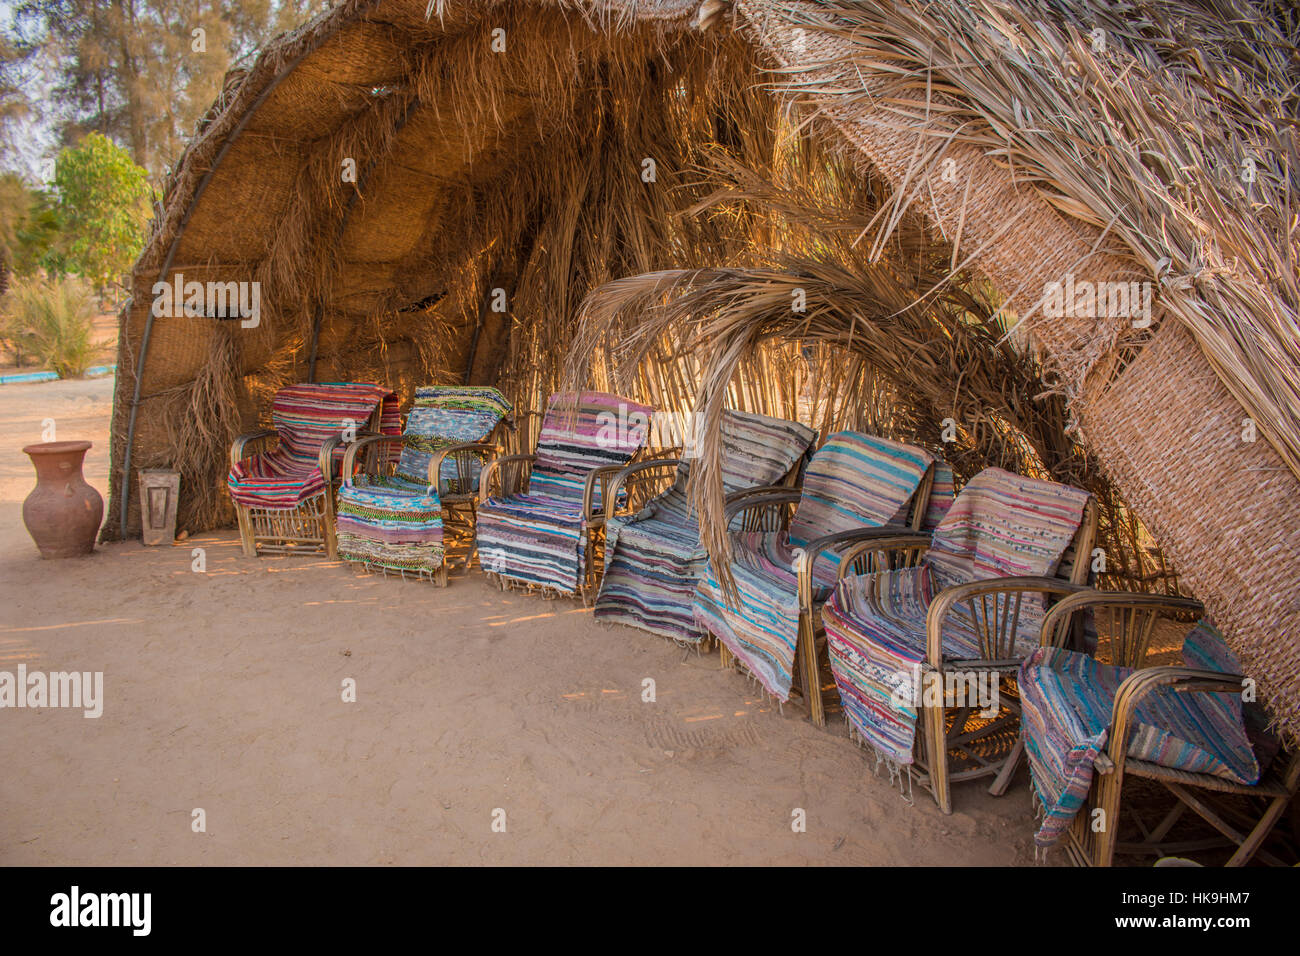 A colorful hut in the Anaphora Complex in Egypt Stock Photo